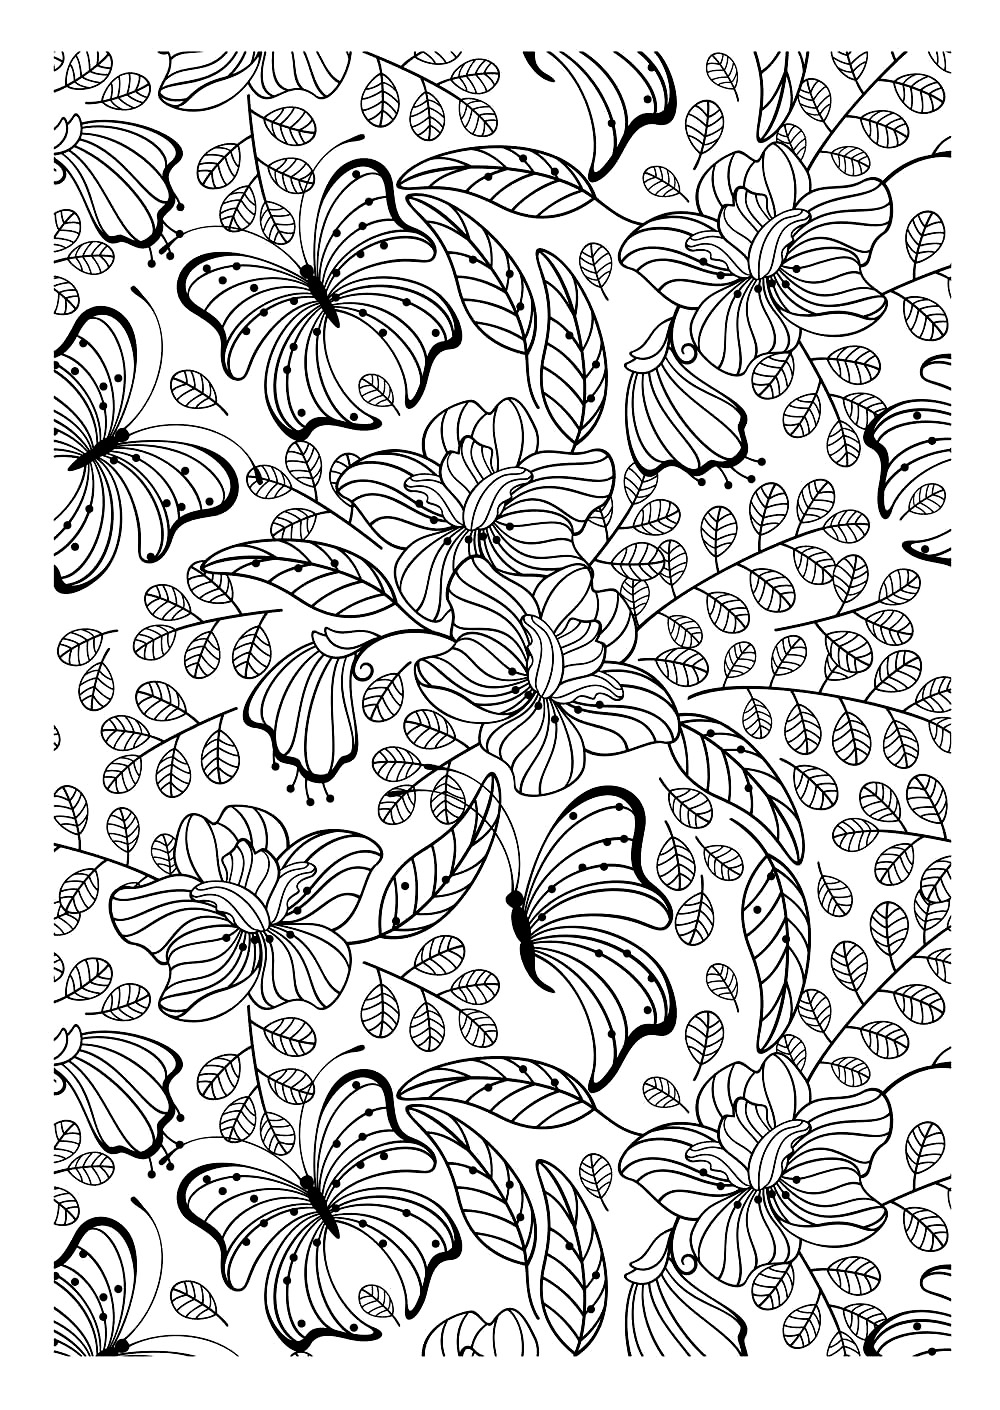 Coloring pictures for adults - Coloring Adult Butterflys Free To Print